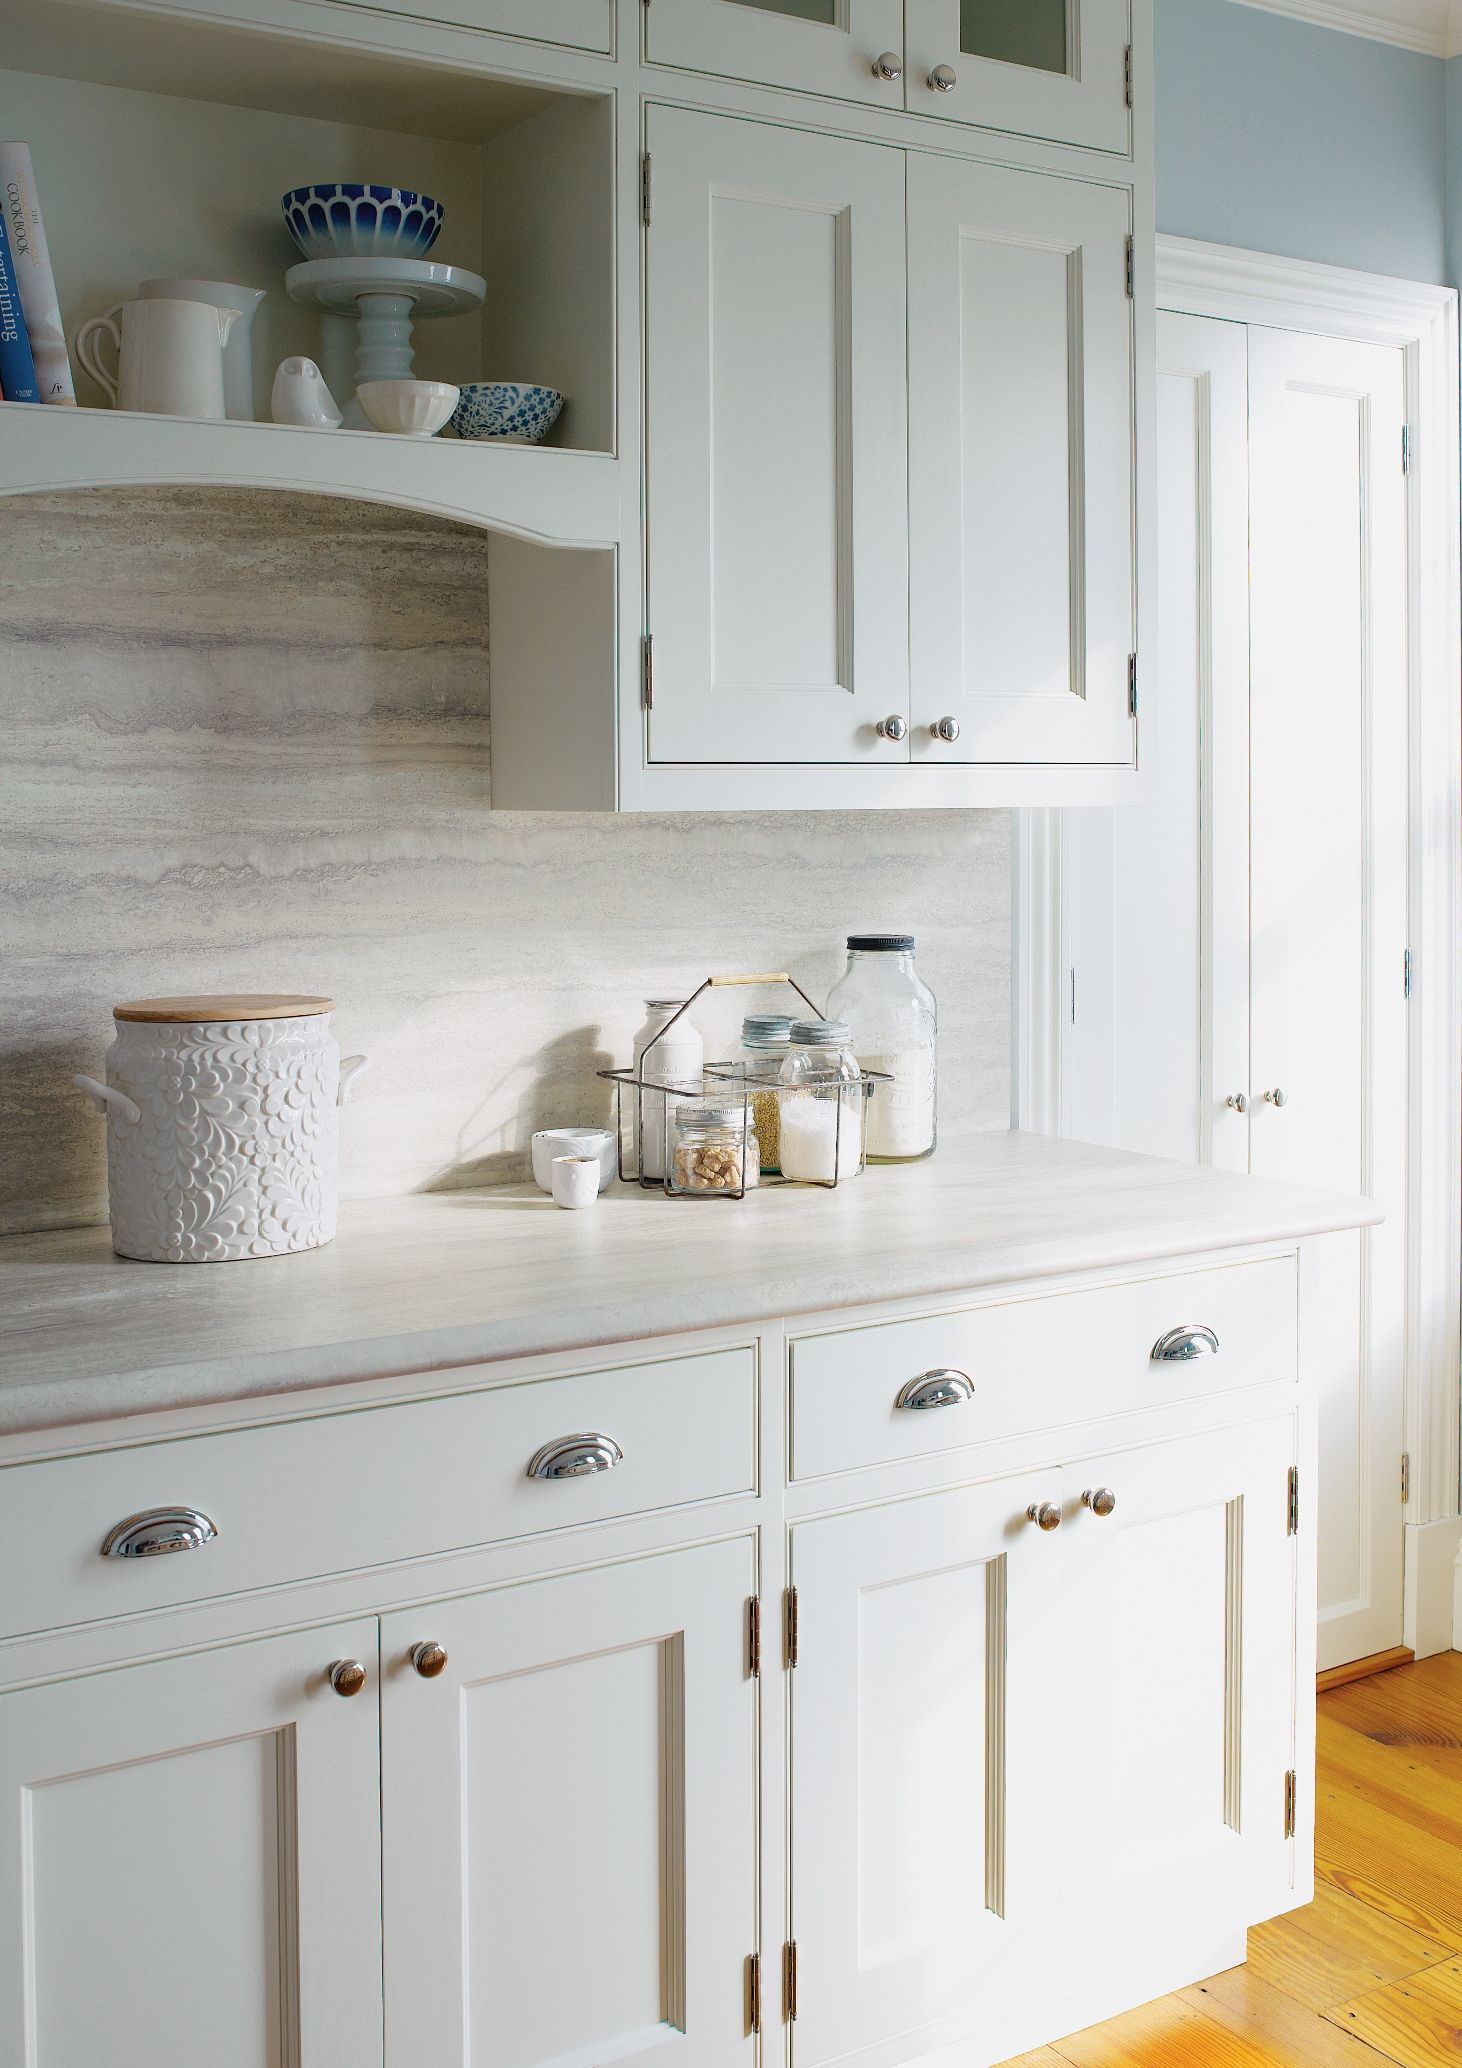 In search of the perfect dream kitchen? This is high on